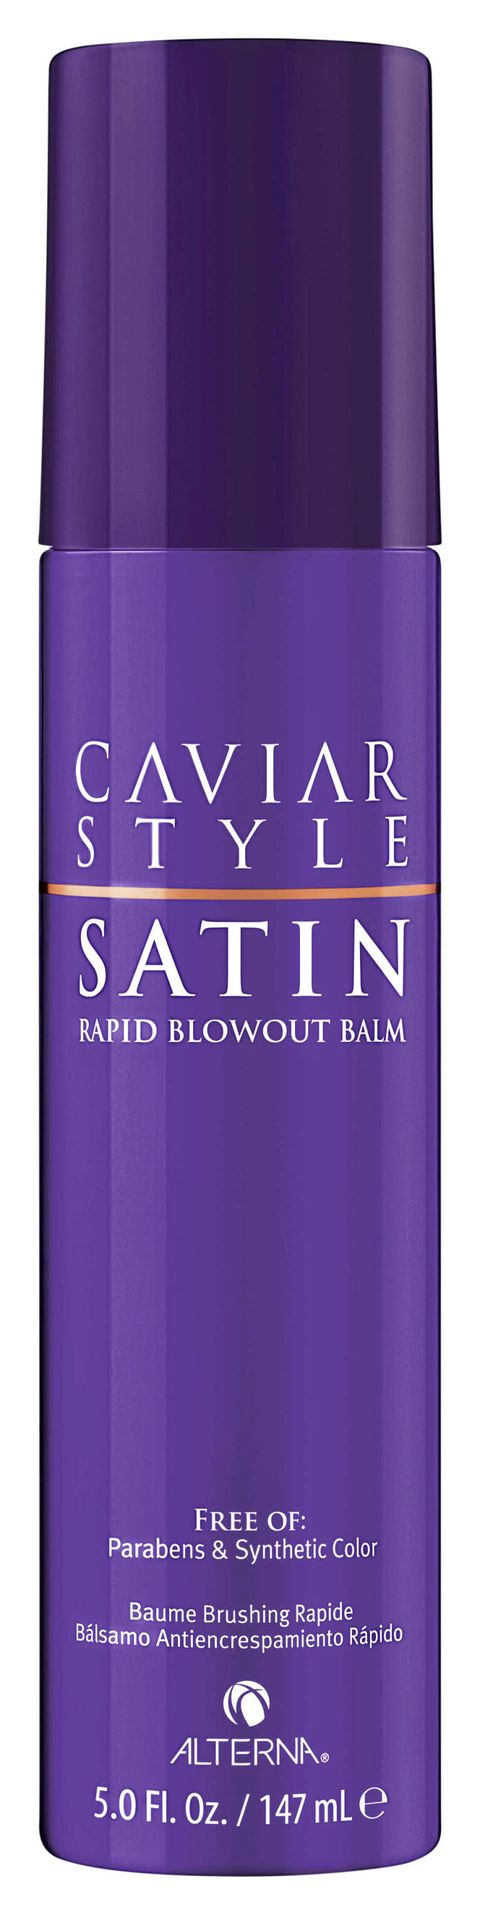 "<p> <strong data-redactor-tag=""strong"">Alterna </strong>Caviar Style Satin Rapid Blowout Balm ($28), <em data-redactor-tag=""em"" data-verified=""redactor""><a href=""http://www.ulta.com/caviar-style-satin-rapid-blowout-balm?productId=xlsImpprod14561015&sku=2306516&_requestid=4203878"">ulta.com</a><strong data-redactor-tag=""strong""></strong></em></p><em data-redactor-tag=""em"" data-verified=""redactor""></em><p><em data-redactor-tag=""em"" data-verified=""redactor""></em></p><p><em data-redactor-tag=""em"" data-verified=""redactor""></em><span class=""redactor-invisible-space"" data-verified=""redactor"" data-redactor-tag=""span"" data-redactor-class=""redactor-invisible-space""><em data-redactor-tag=""em"" data-verified=""redactor""></em></span></p>"